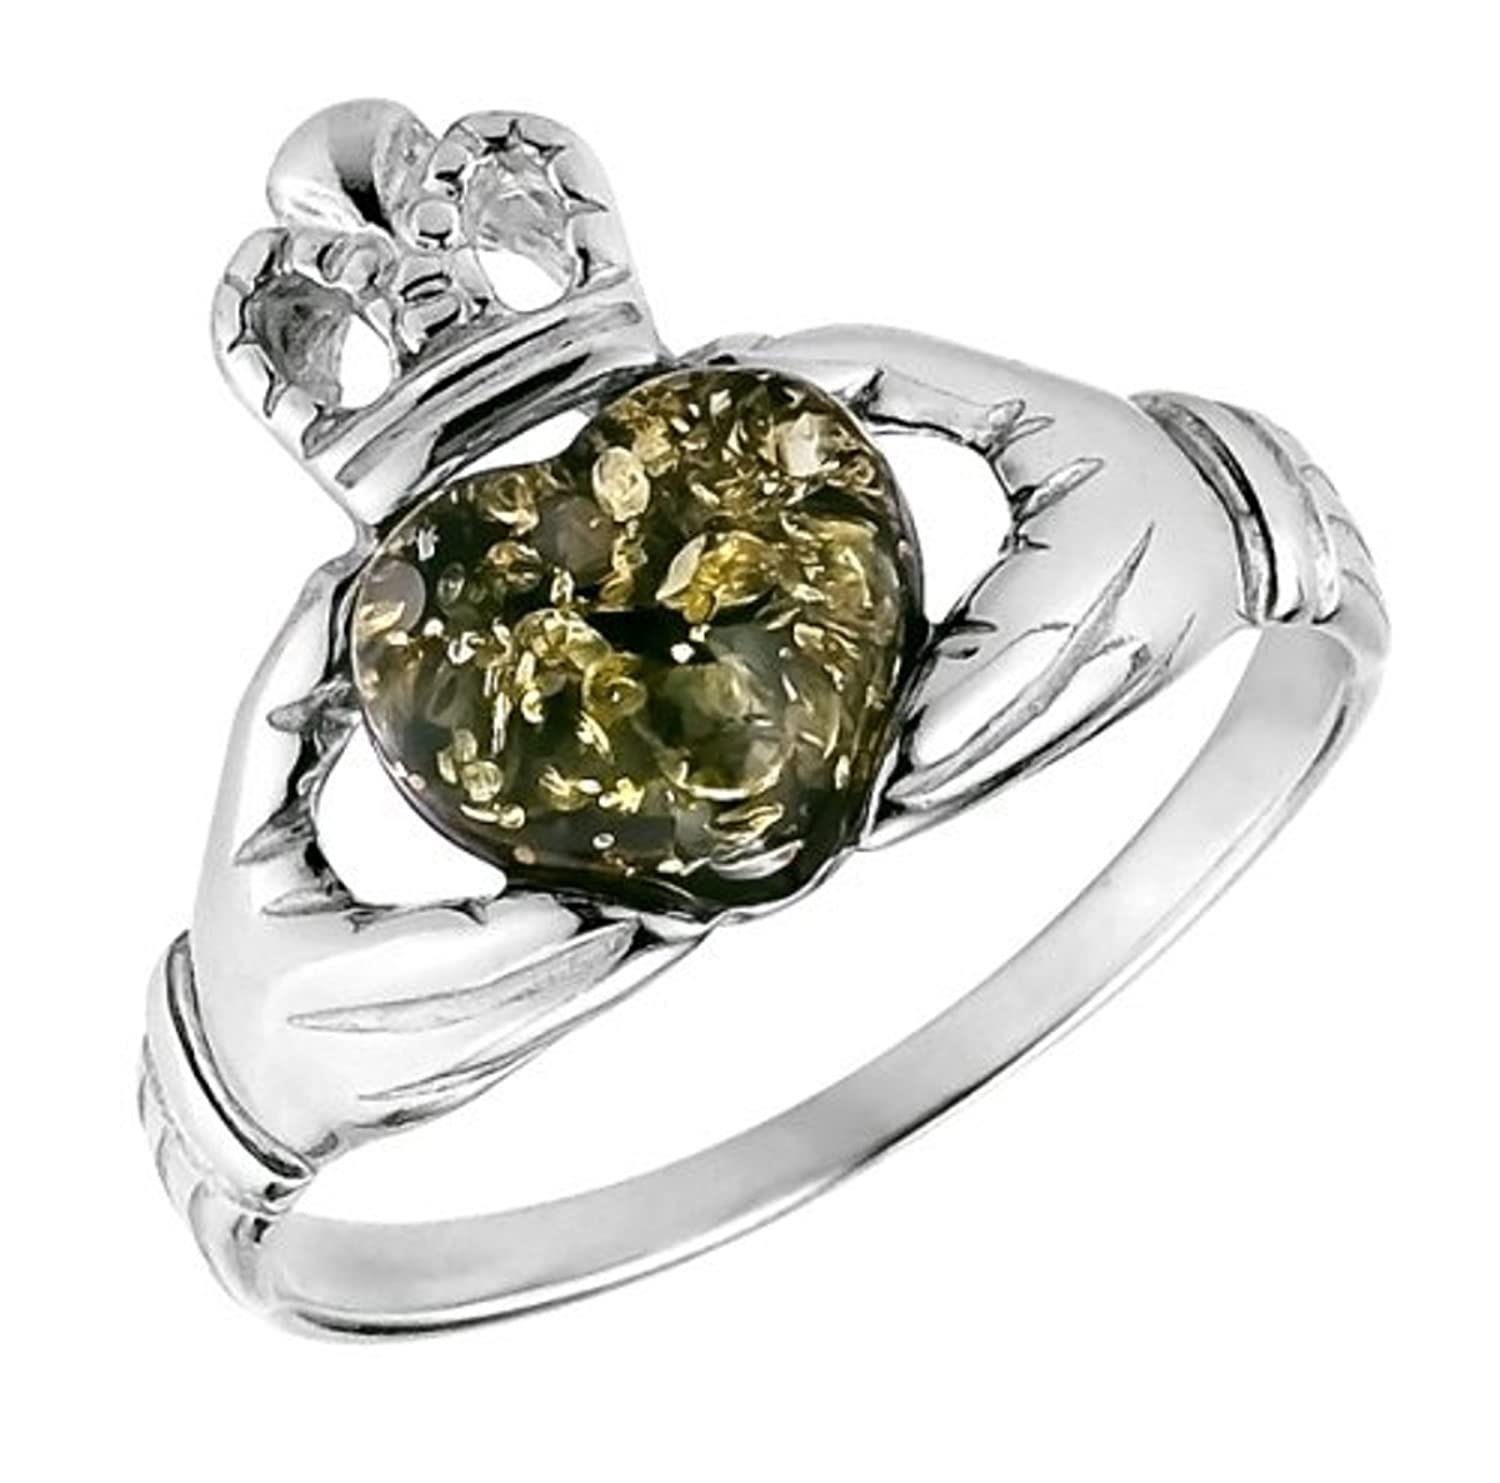 products silver rough jewellery queen engagement amber rings citrine stone single ring cut dsc